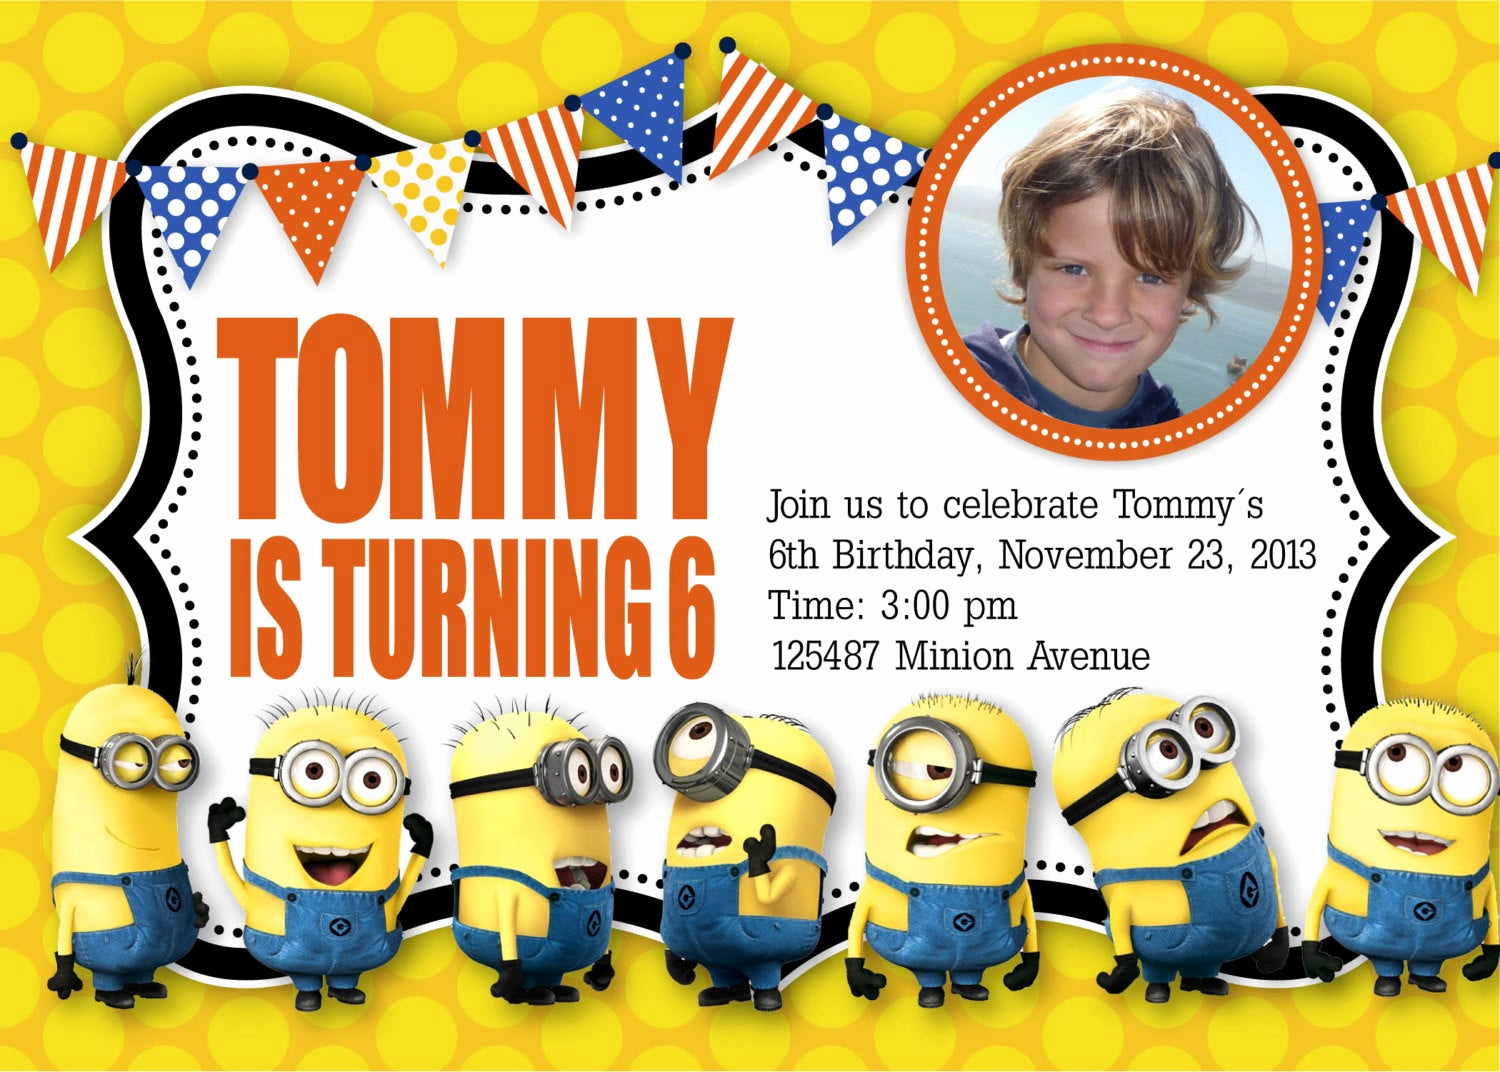 Minions Birthday Invitation Template Awesome 40th Birthday Ideas Minion Birthday Invitations Templates